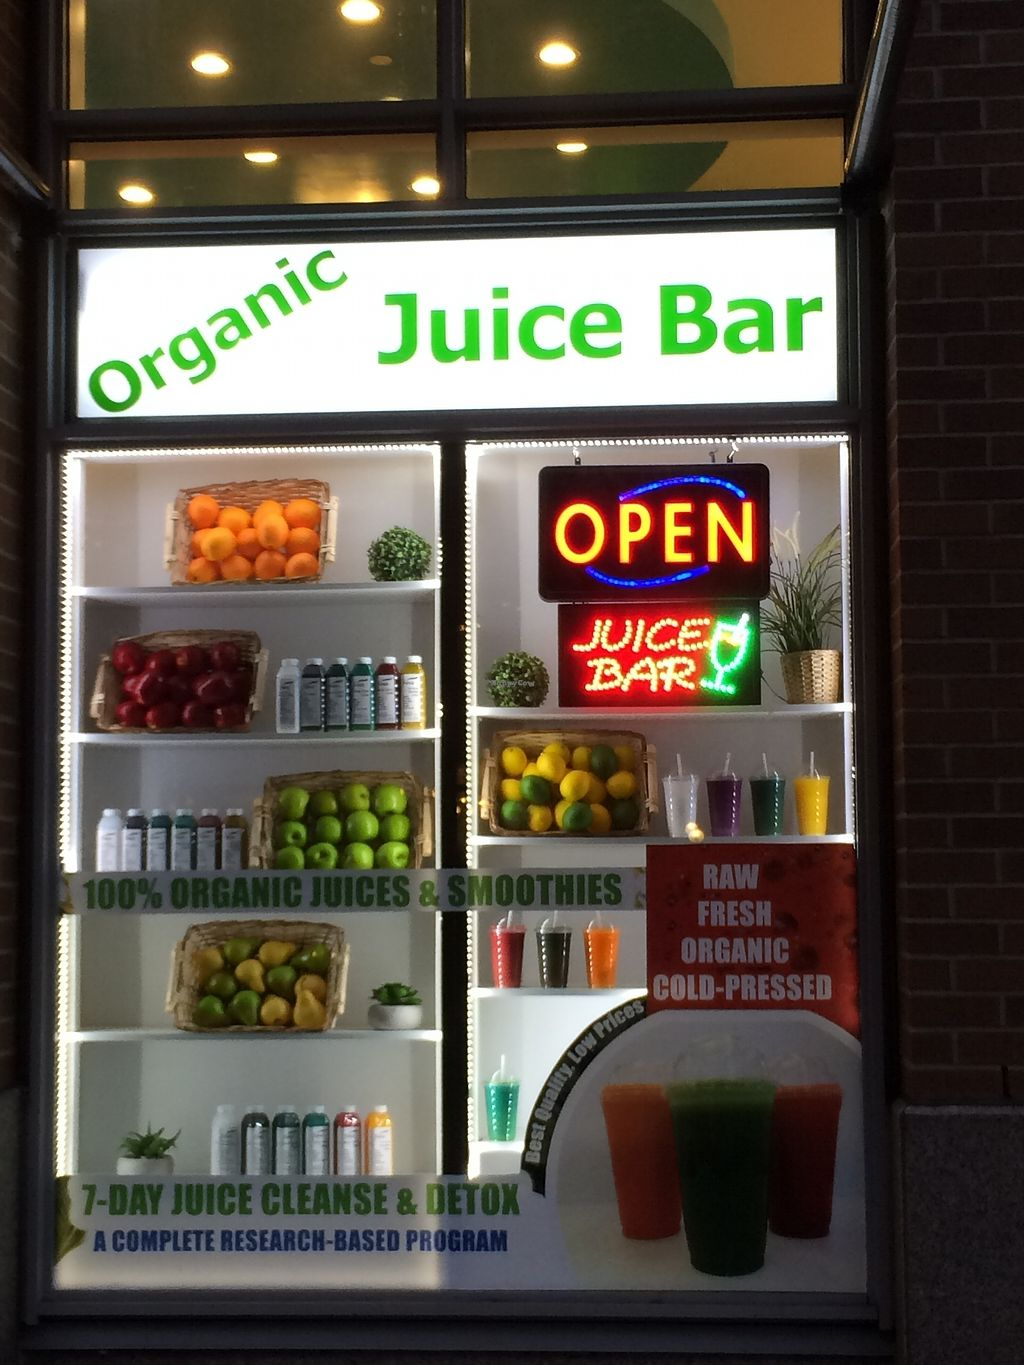 "Photo of Sina Pharmacy & Organic Juice Bar  by <a href=""/members/profile/Mdrutz"">Mdrutz</a> <br/>Juice bar window <br/> January 7, 2018  - <a href='/contact/abuse/image/108909/344070'>Report</a>"